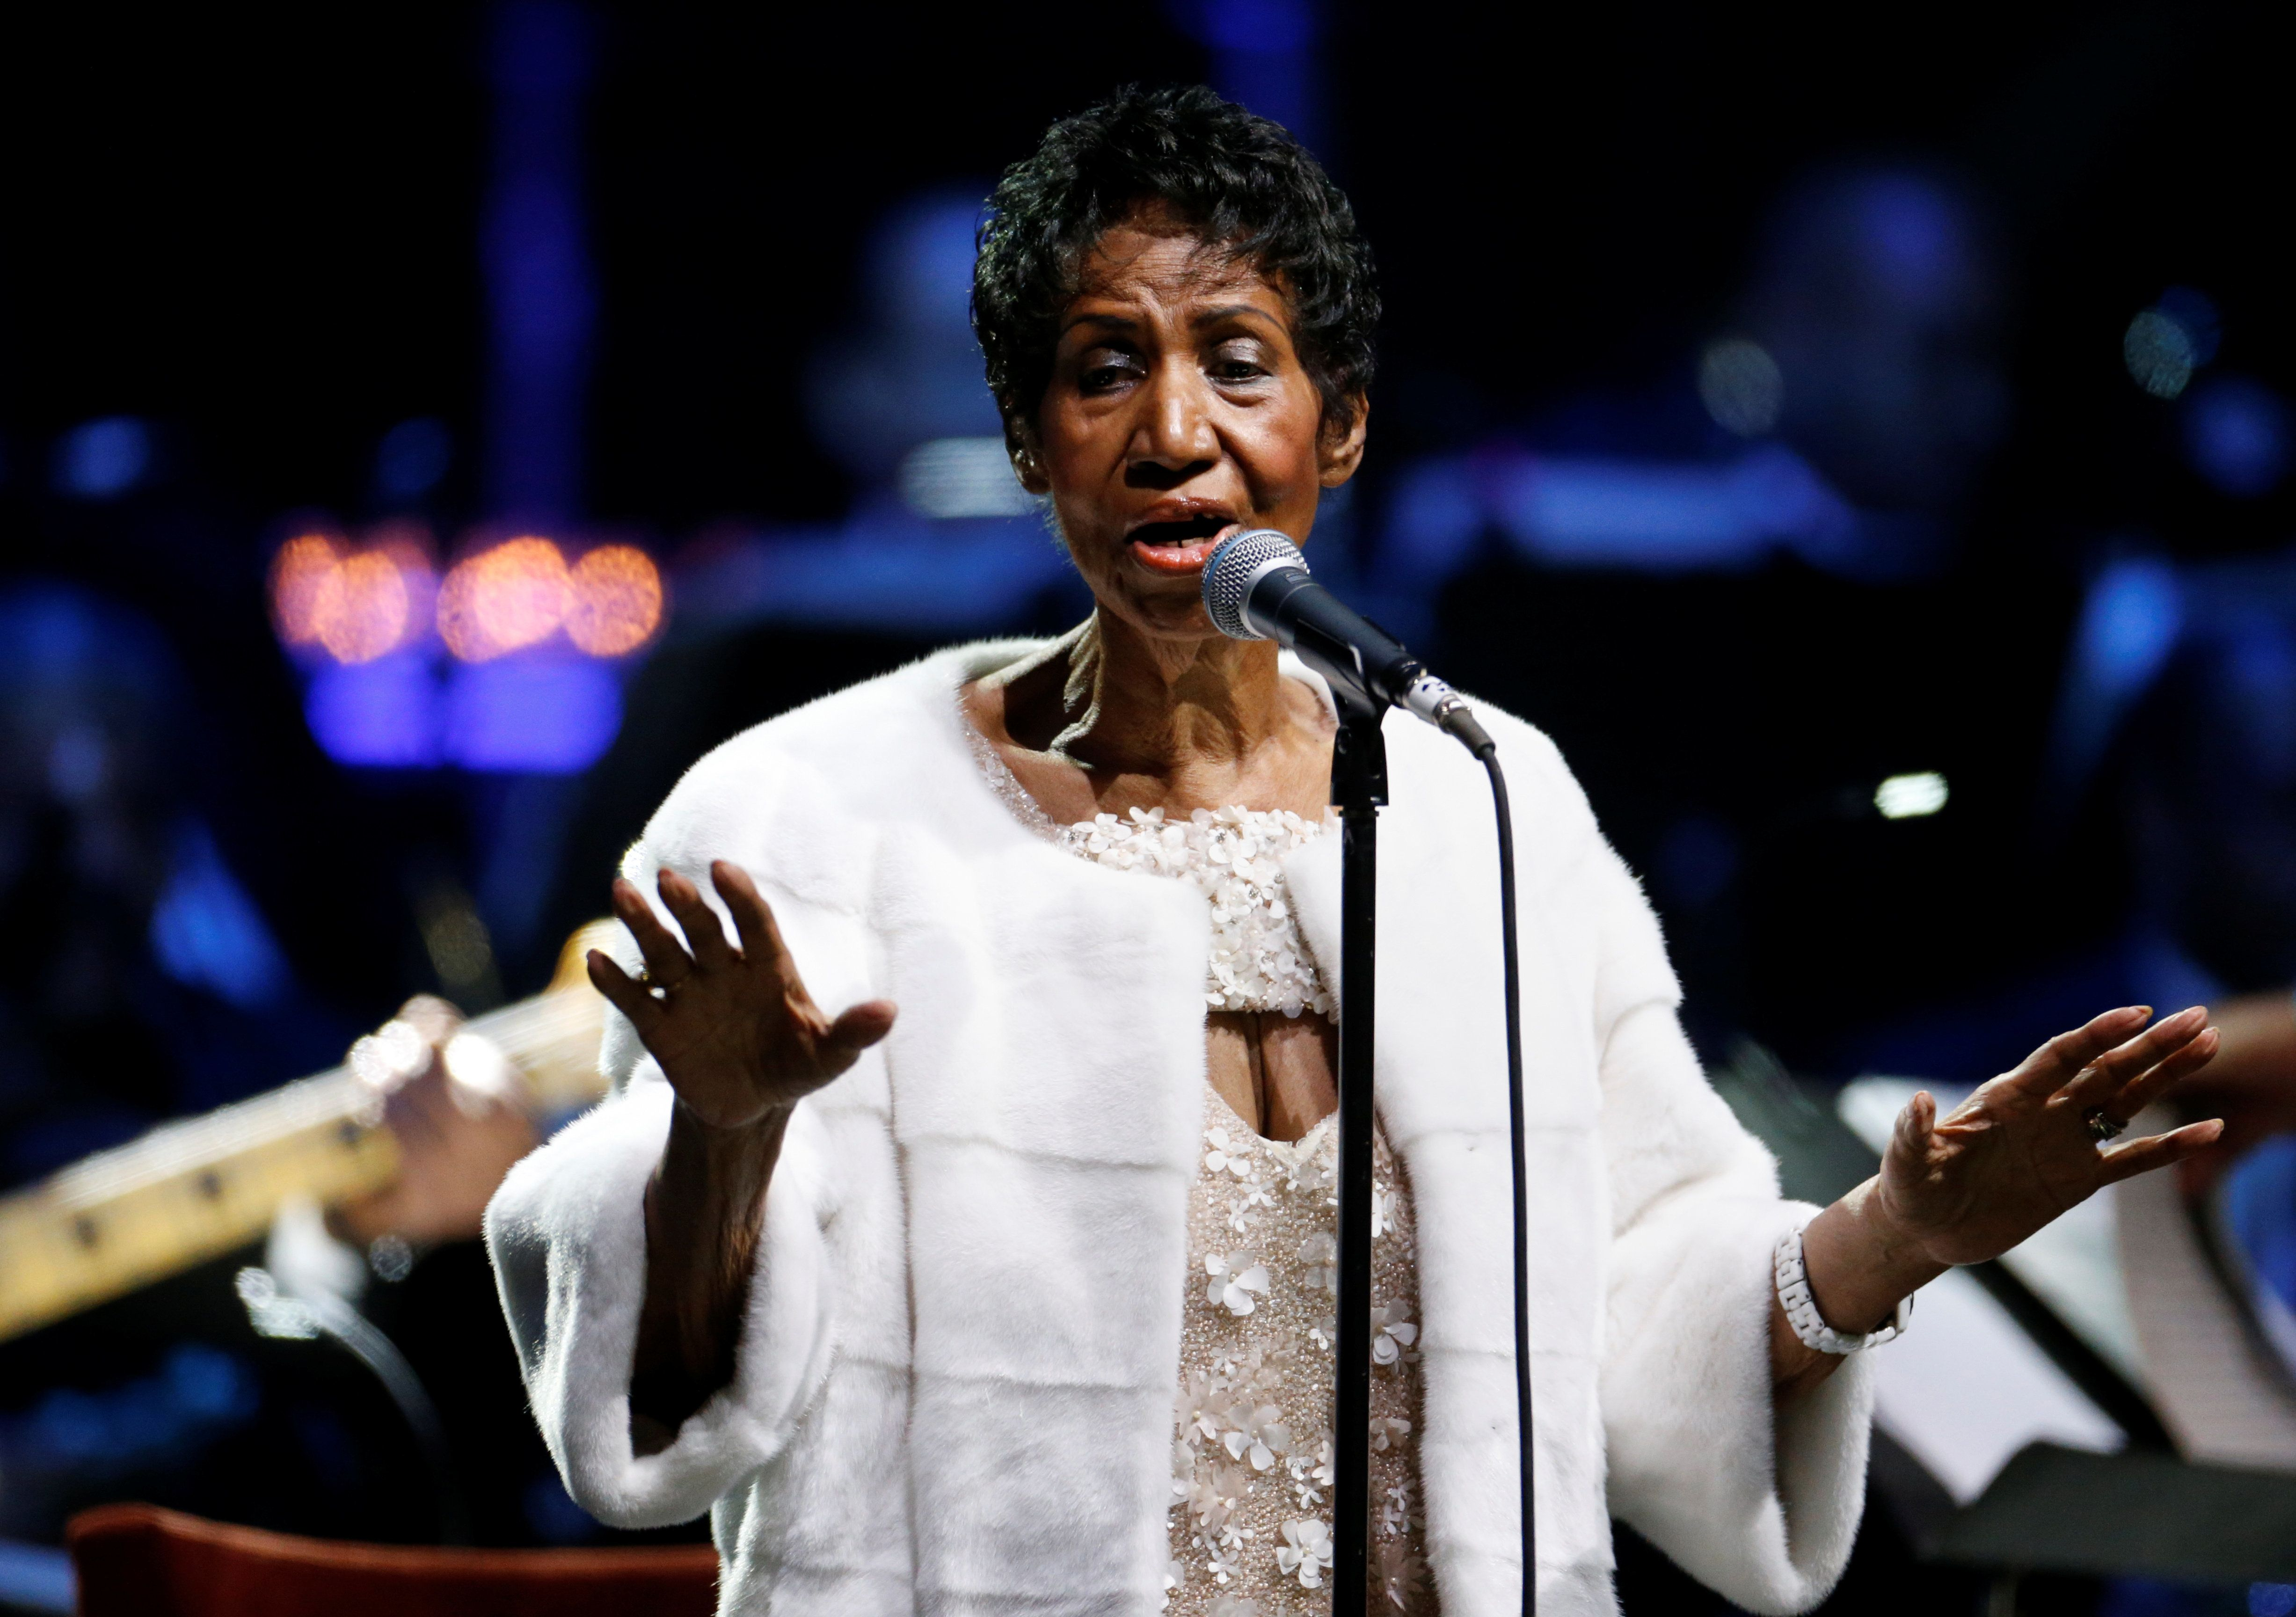 Prayers offered for Aretha Franklin at church once led by her father